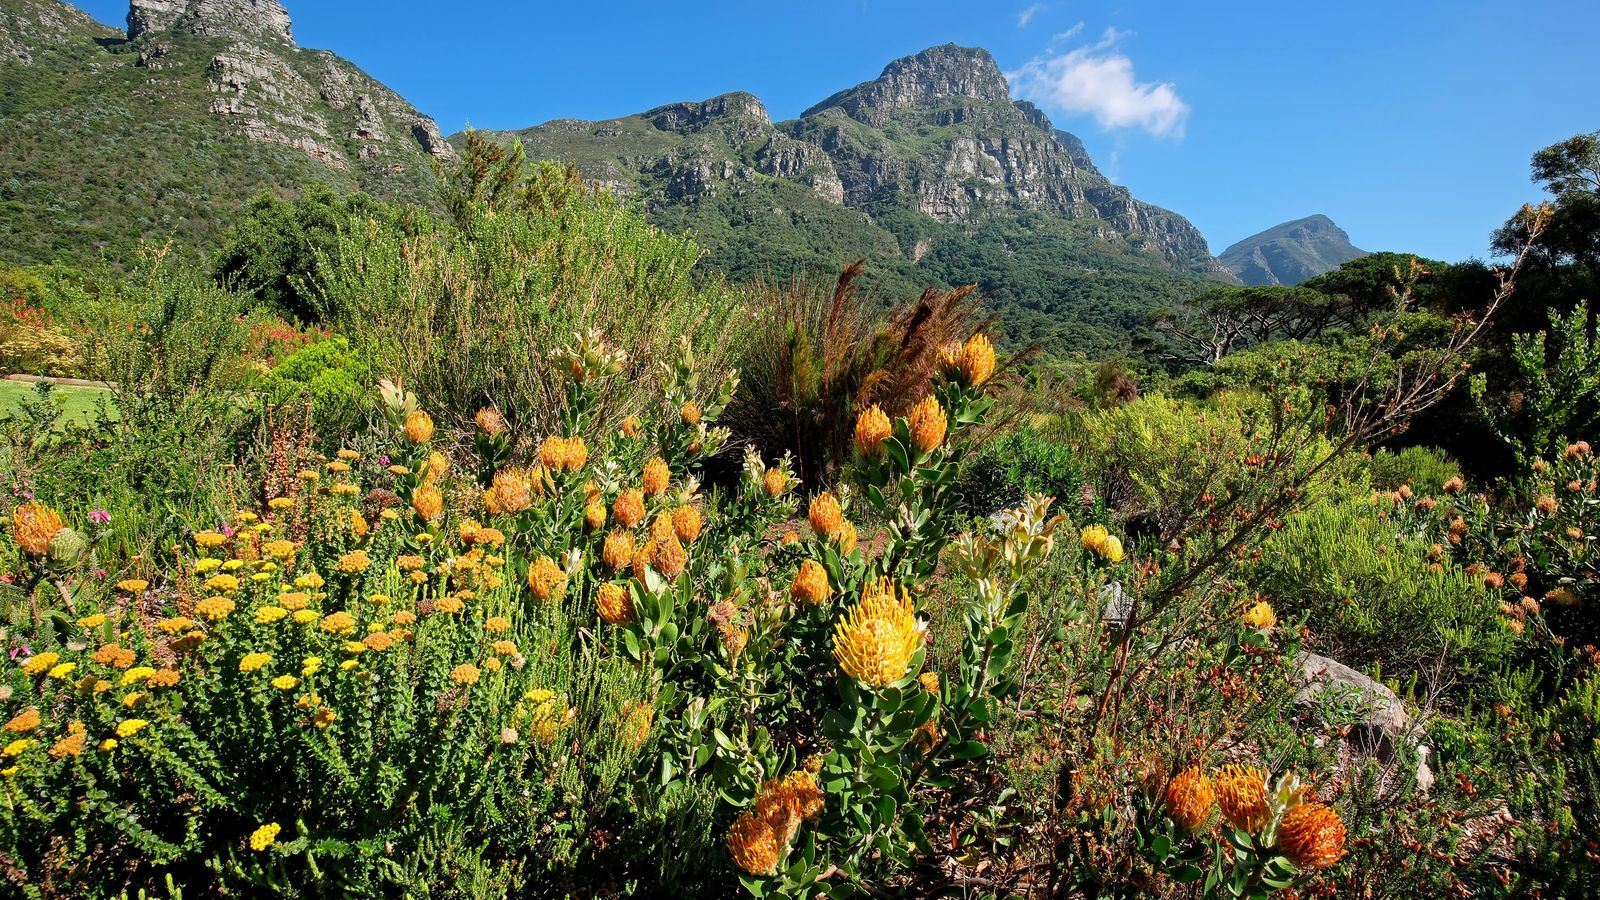 Whether exploring these unique flowers in the wild, or touring the Kirstenbosch botanical gardens, the rare ...